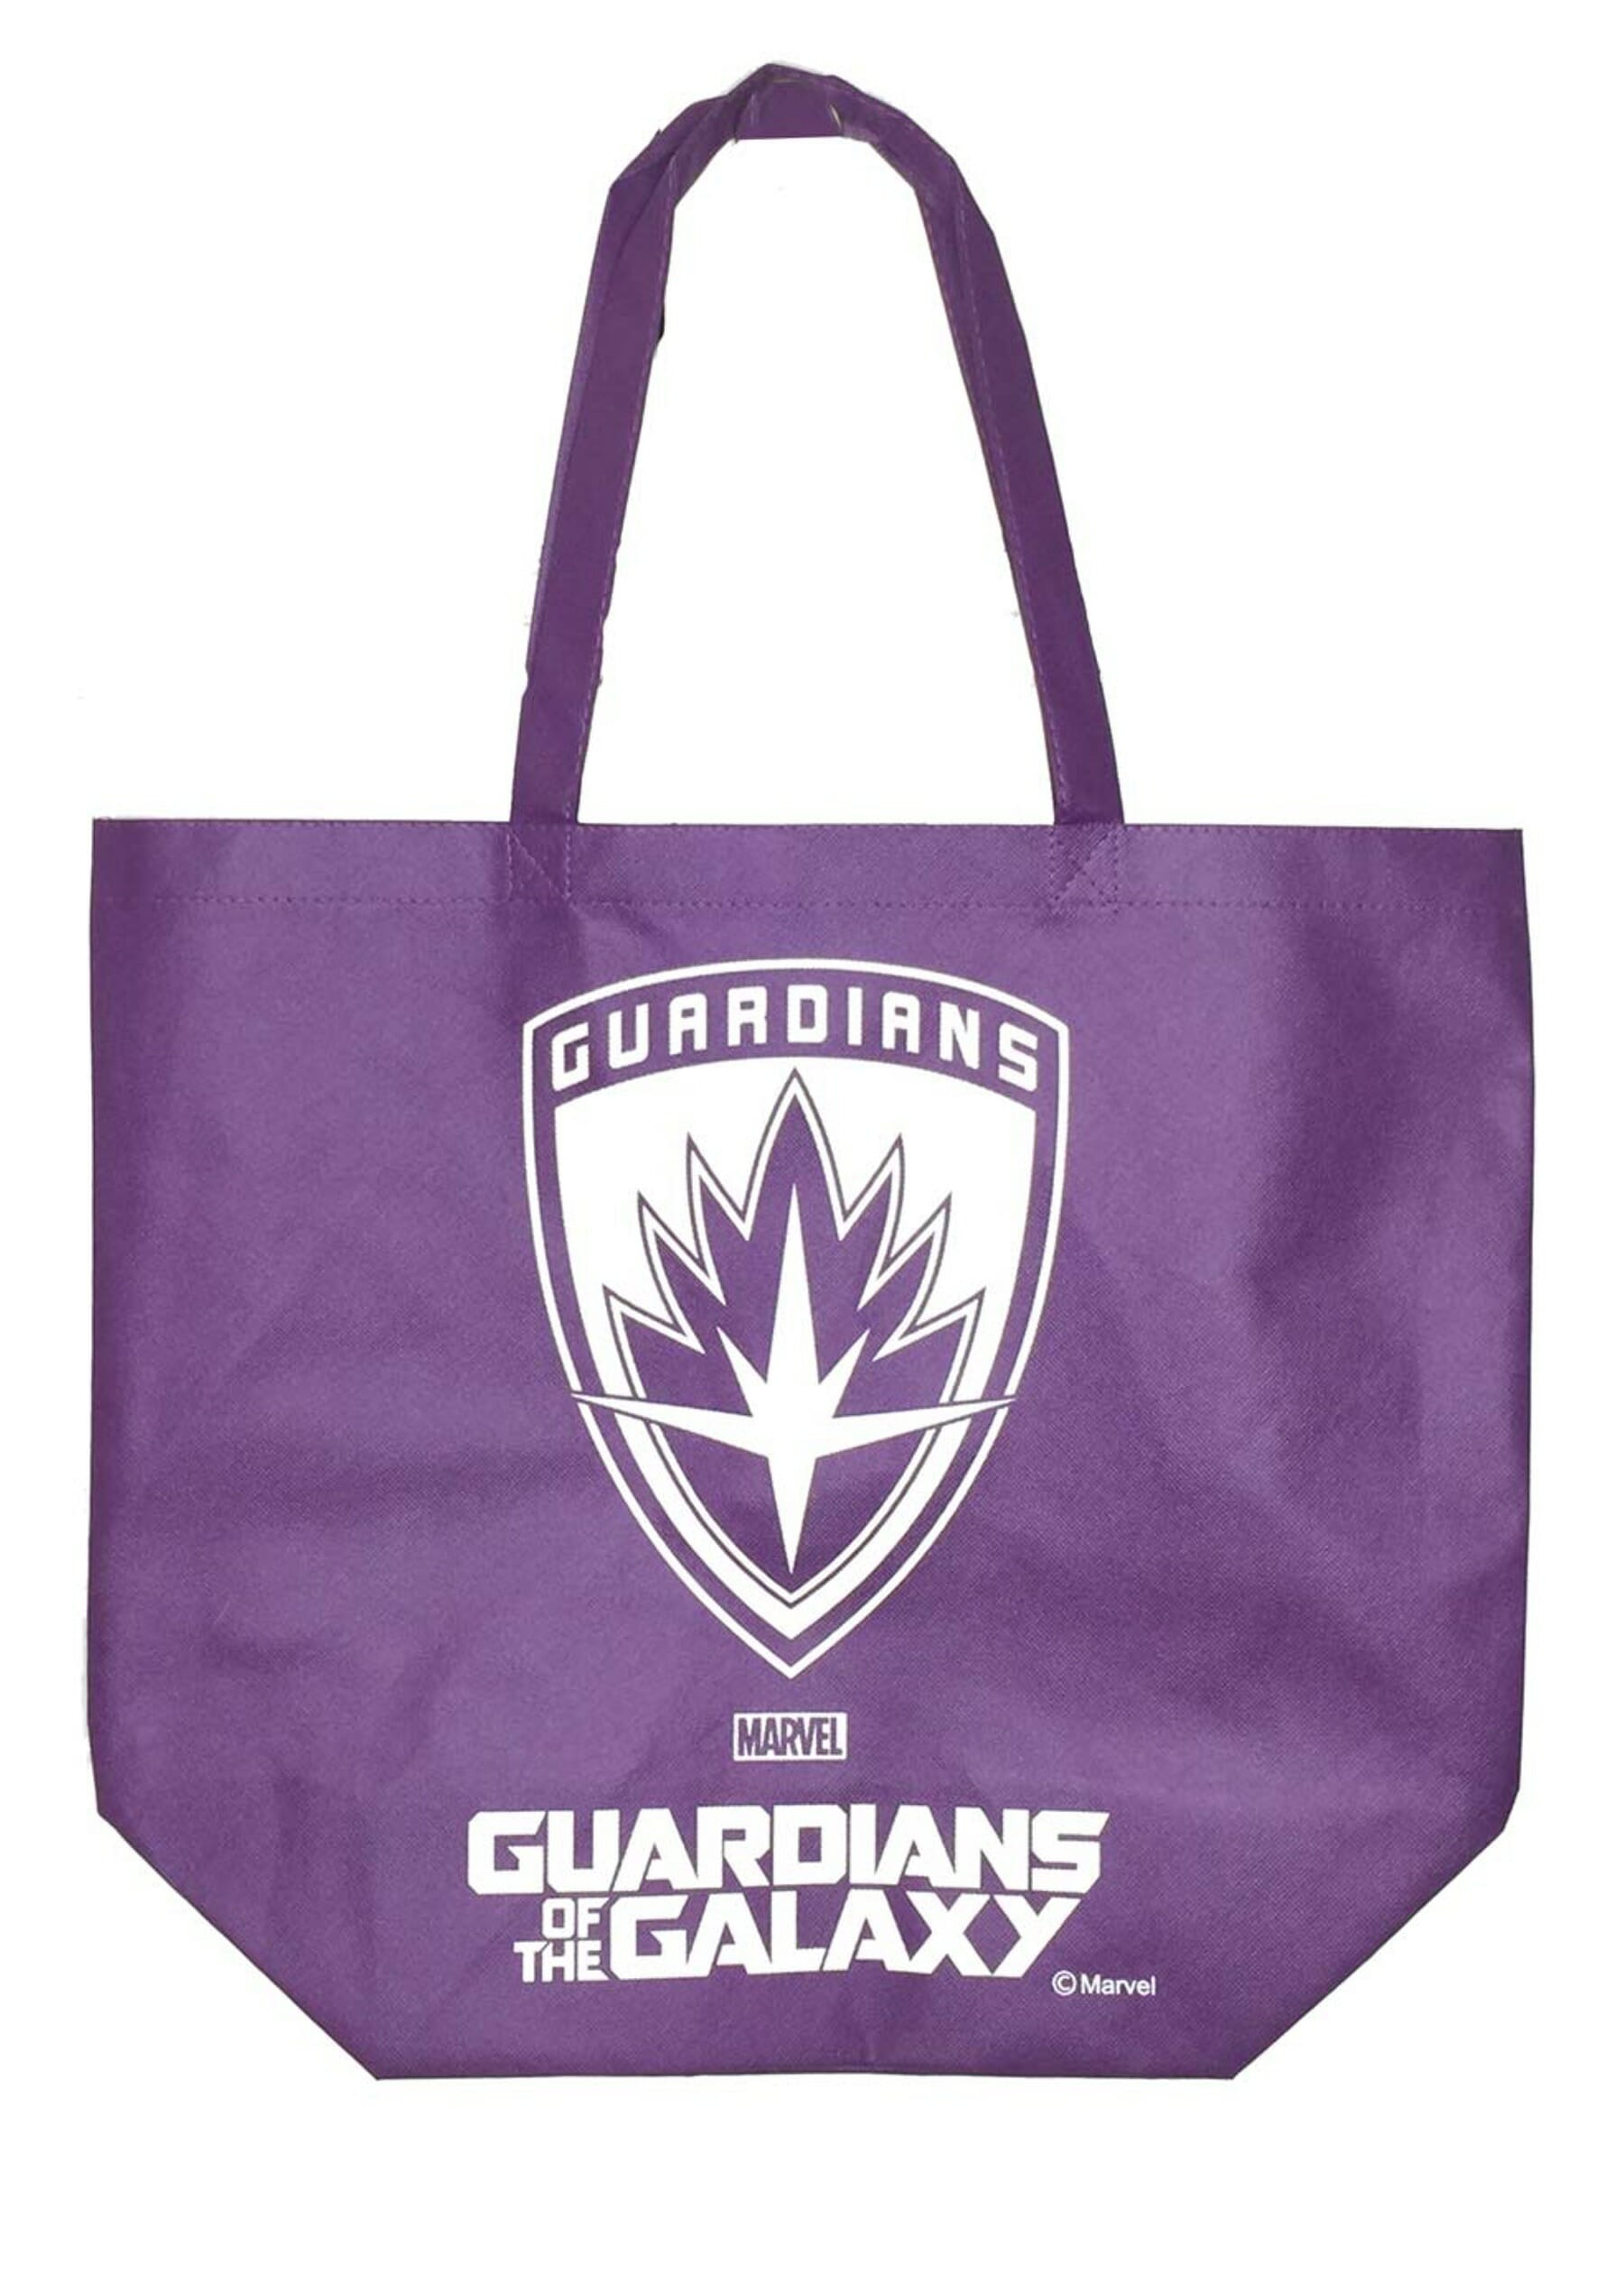 Hot Toys Guardians of the Galaxy Tote Bag